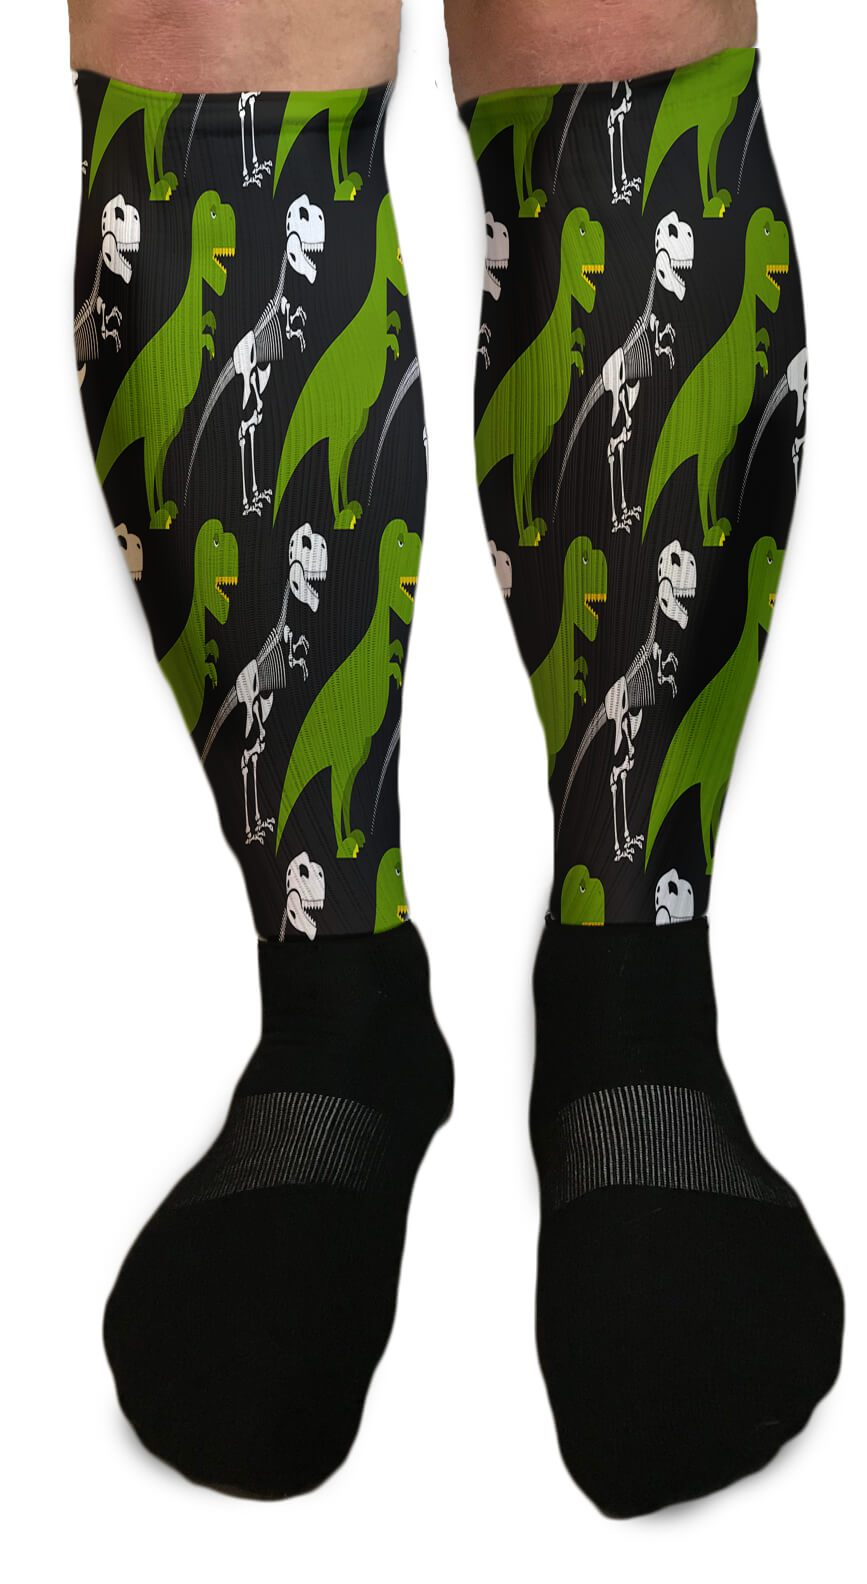 FUNNY T-REX DINOSAUR ATHLETIC OR COMPRESSION SOCKS